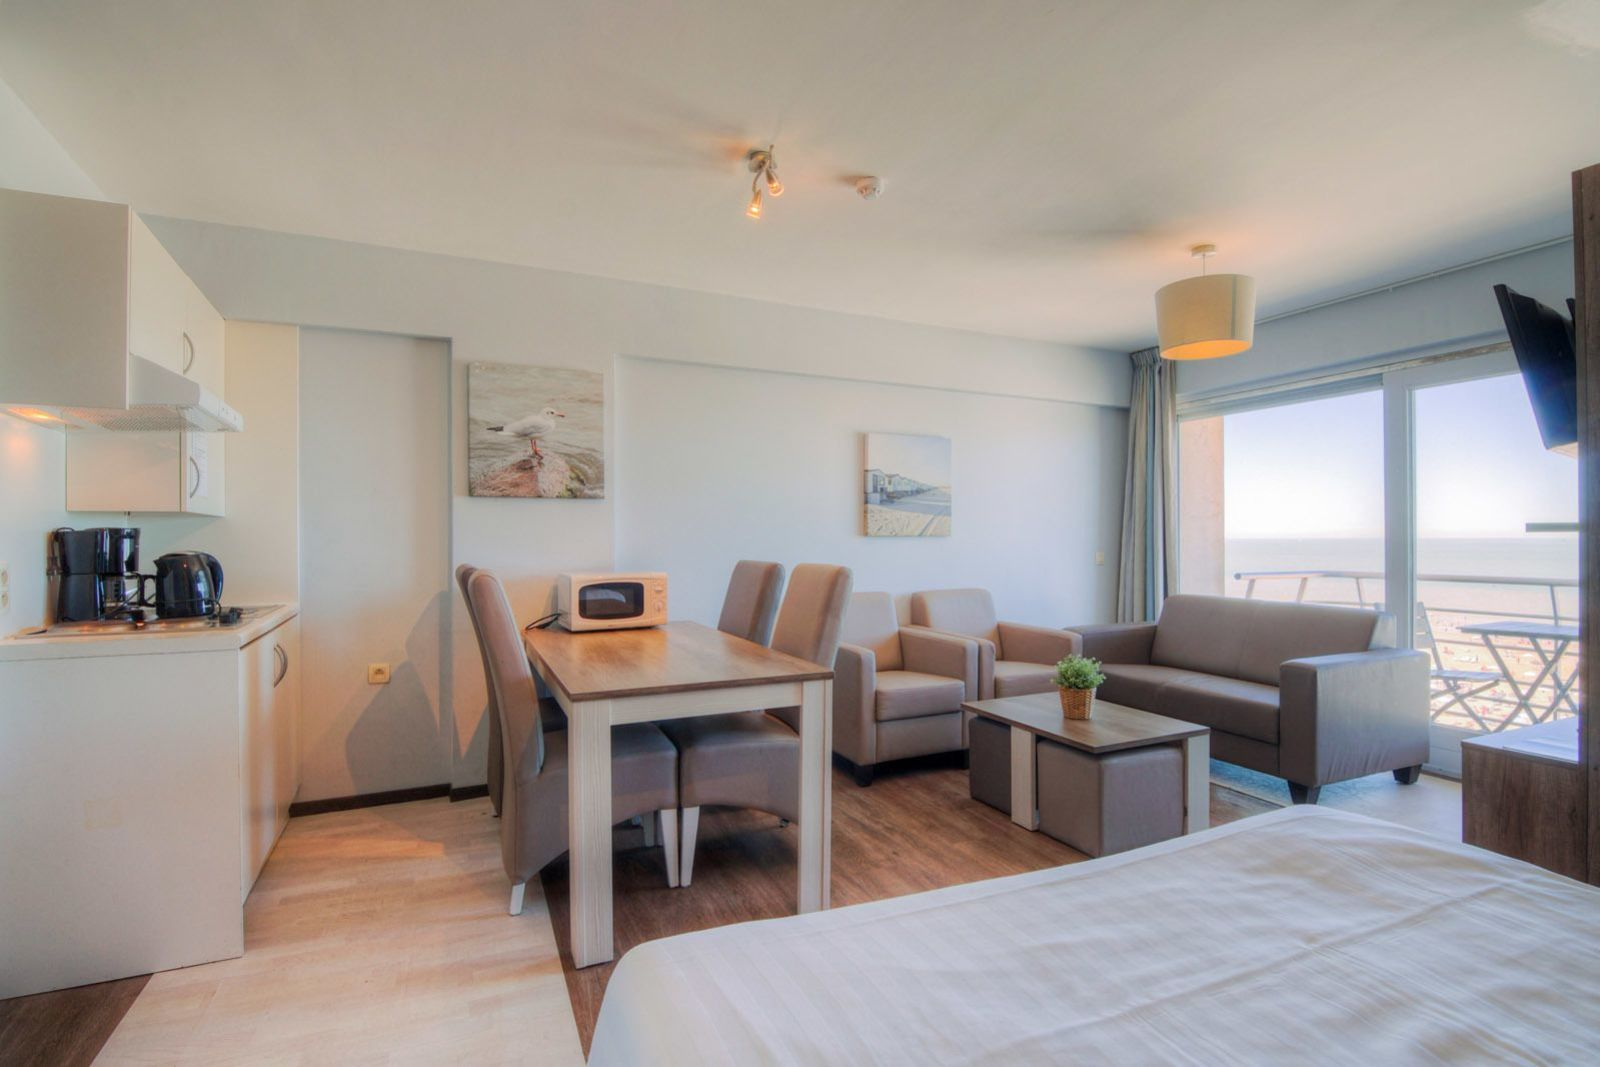 New Holiday Suite for 2 adults and 3 children with seaview